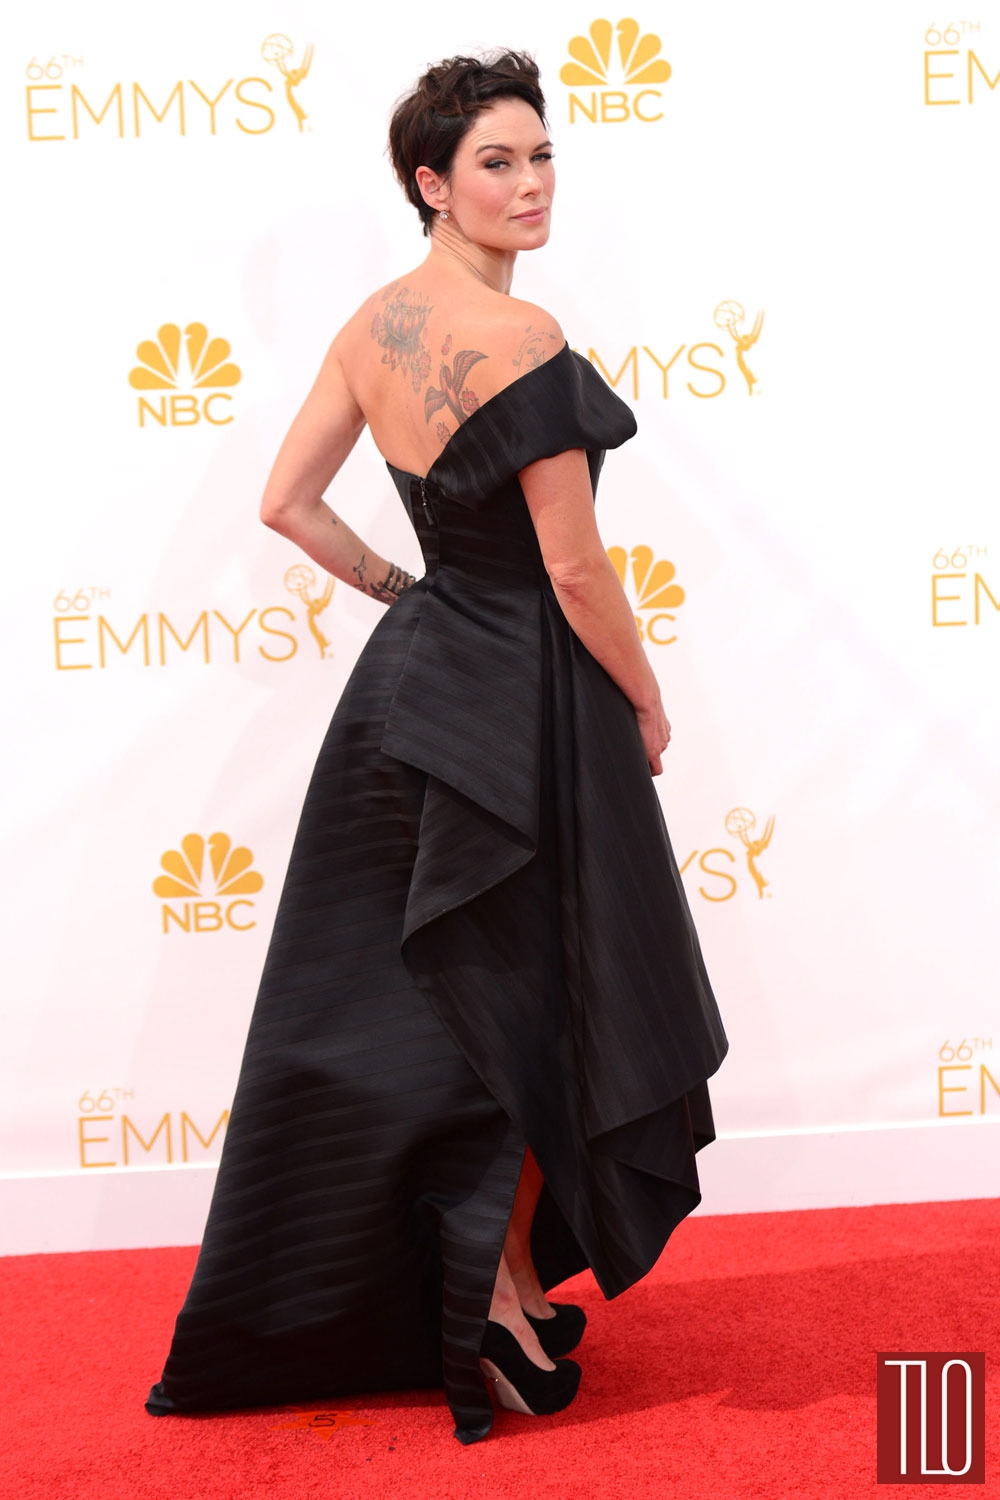 Lena-Headey-2014-Emmy-Awards-Rubin-Singer-Red-Carpet-Tom-Lorenzo-Site-TLO (1)